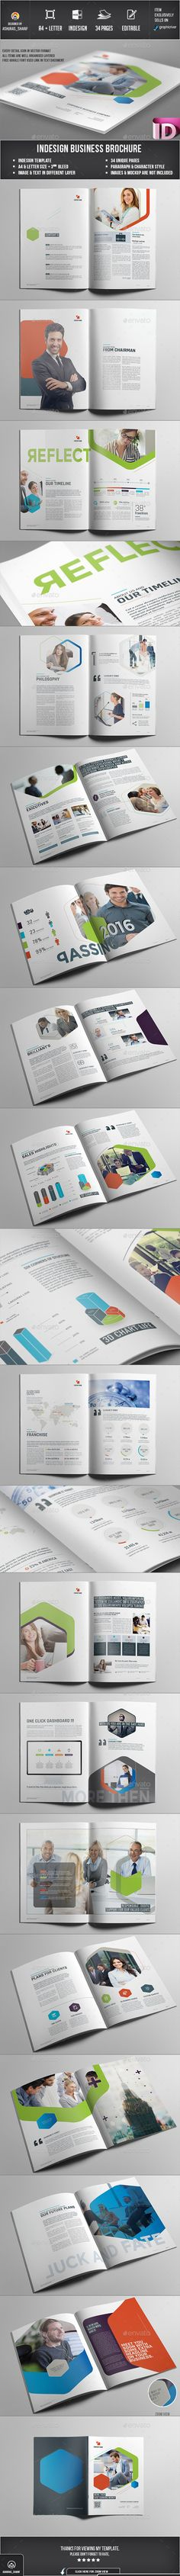 Brochure - Corporate Brochures Easy Customization and Editable A4 and US Letter Size with 3mm bleed 34 pages Paragraph Style, Character style included Images, text, Objects are Different Layers Design in 300 DPI Resolution Indesign files Auto numbering option working file adobe cc Adobe Indesign CC,CS6,CS5,CS4 or latter software version supported